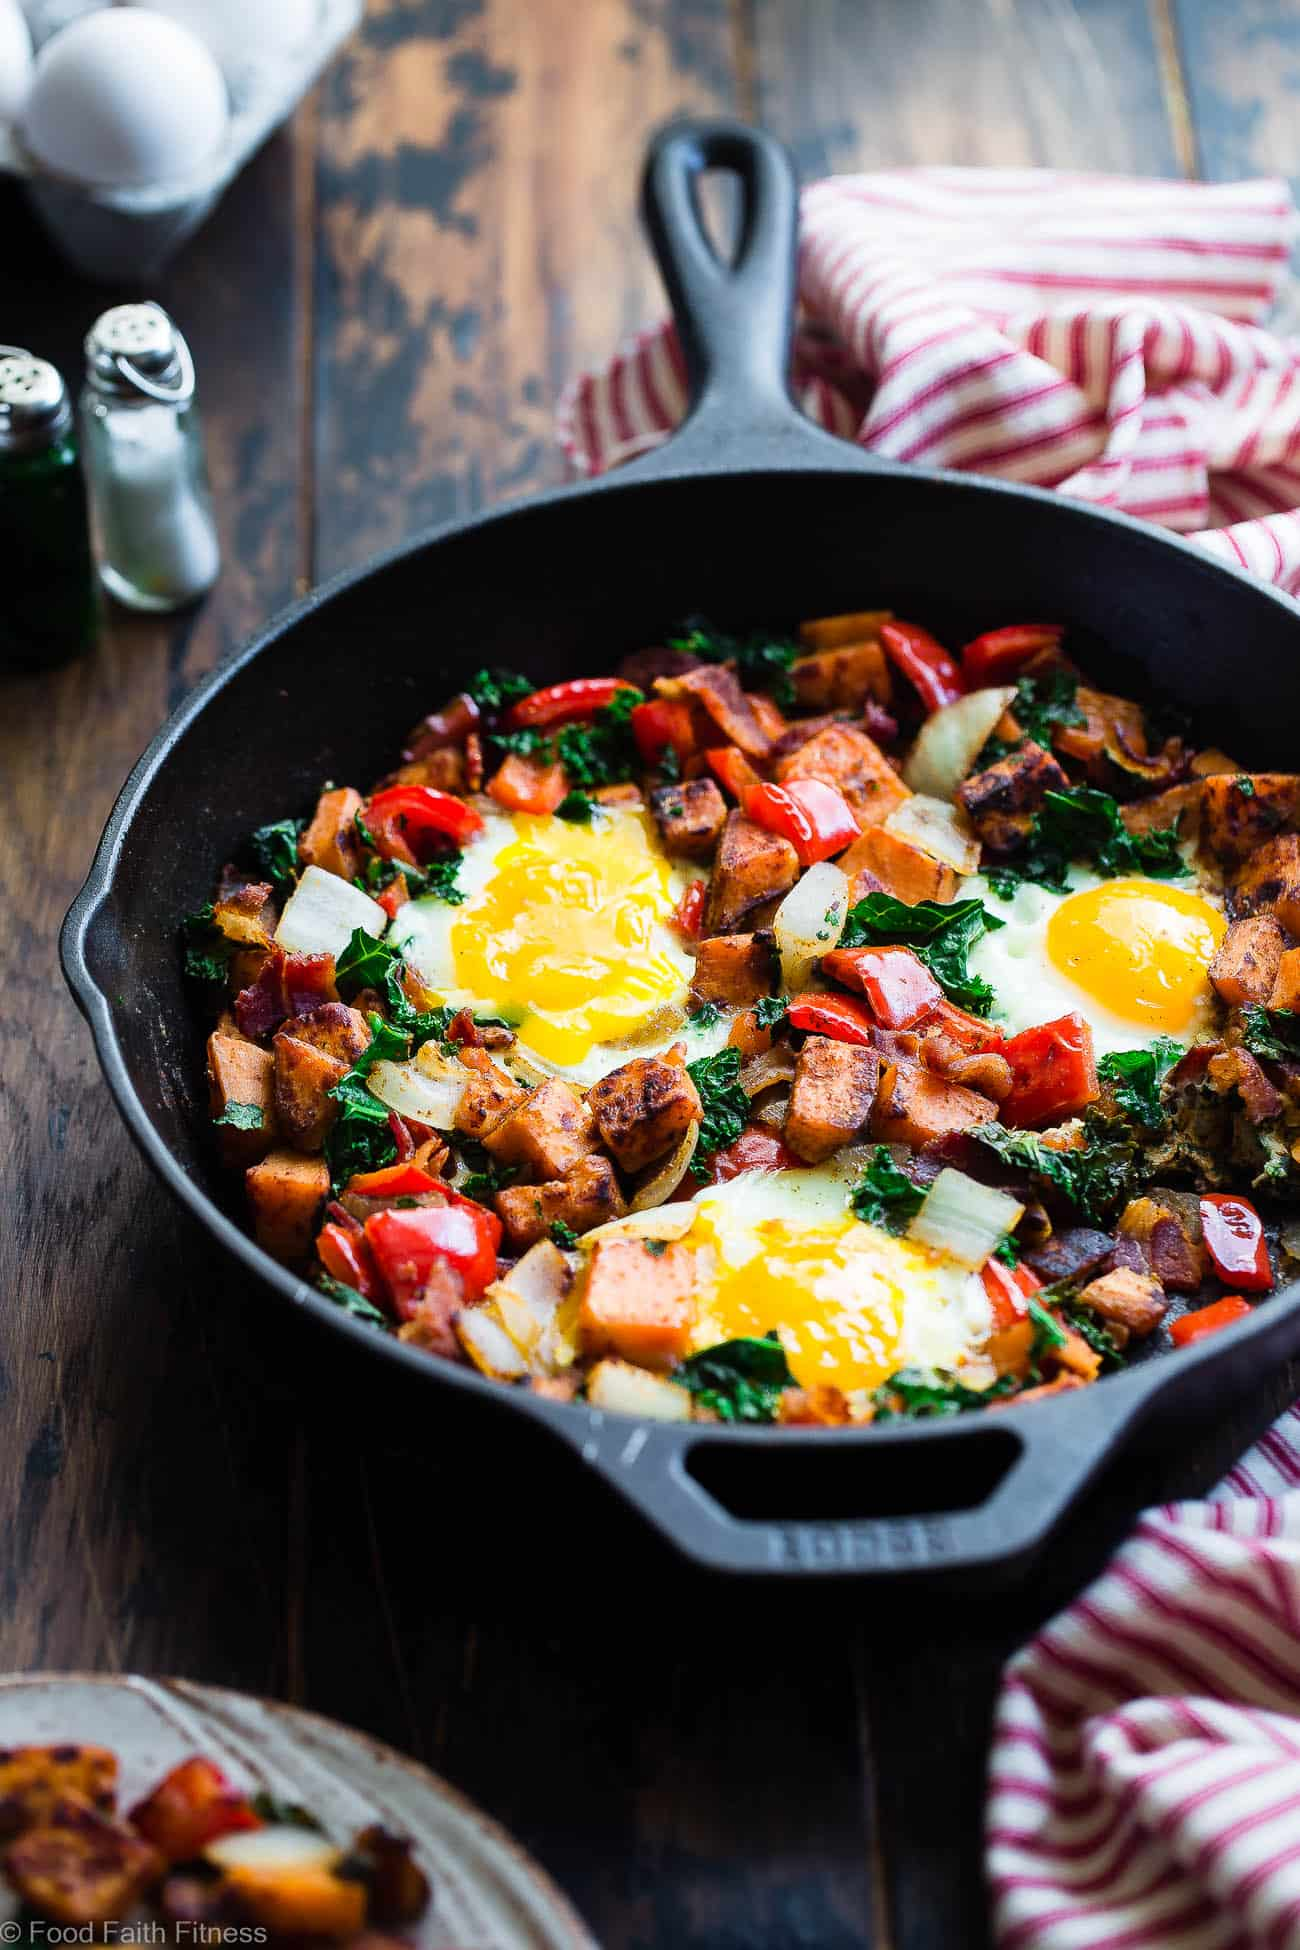 Healthy Paleo Sweet Potato Breakfast Hash with Bacon -This 30 minute, paleo friendly sweet potato hash with eggs makes a quick, delicious and healthy breakfast that is gluten/grain/dairy/sugar free and only 310 calories!| #Foodfaithfitness.com | #Paleo #Glutenfree #Whole30 #Healthy #Breakfast